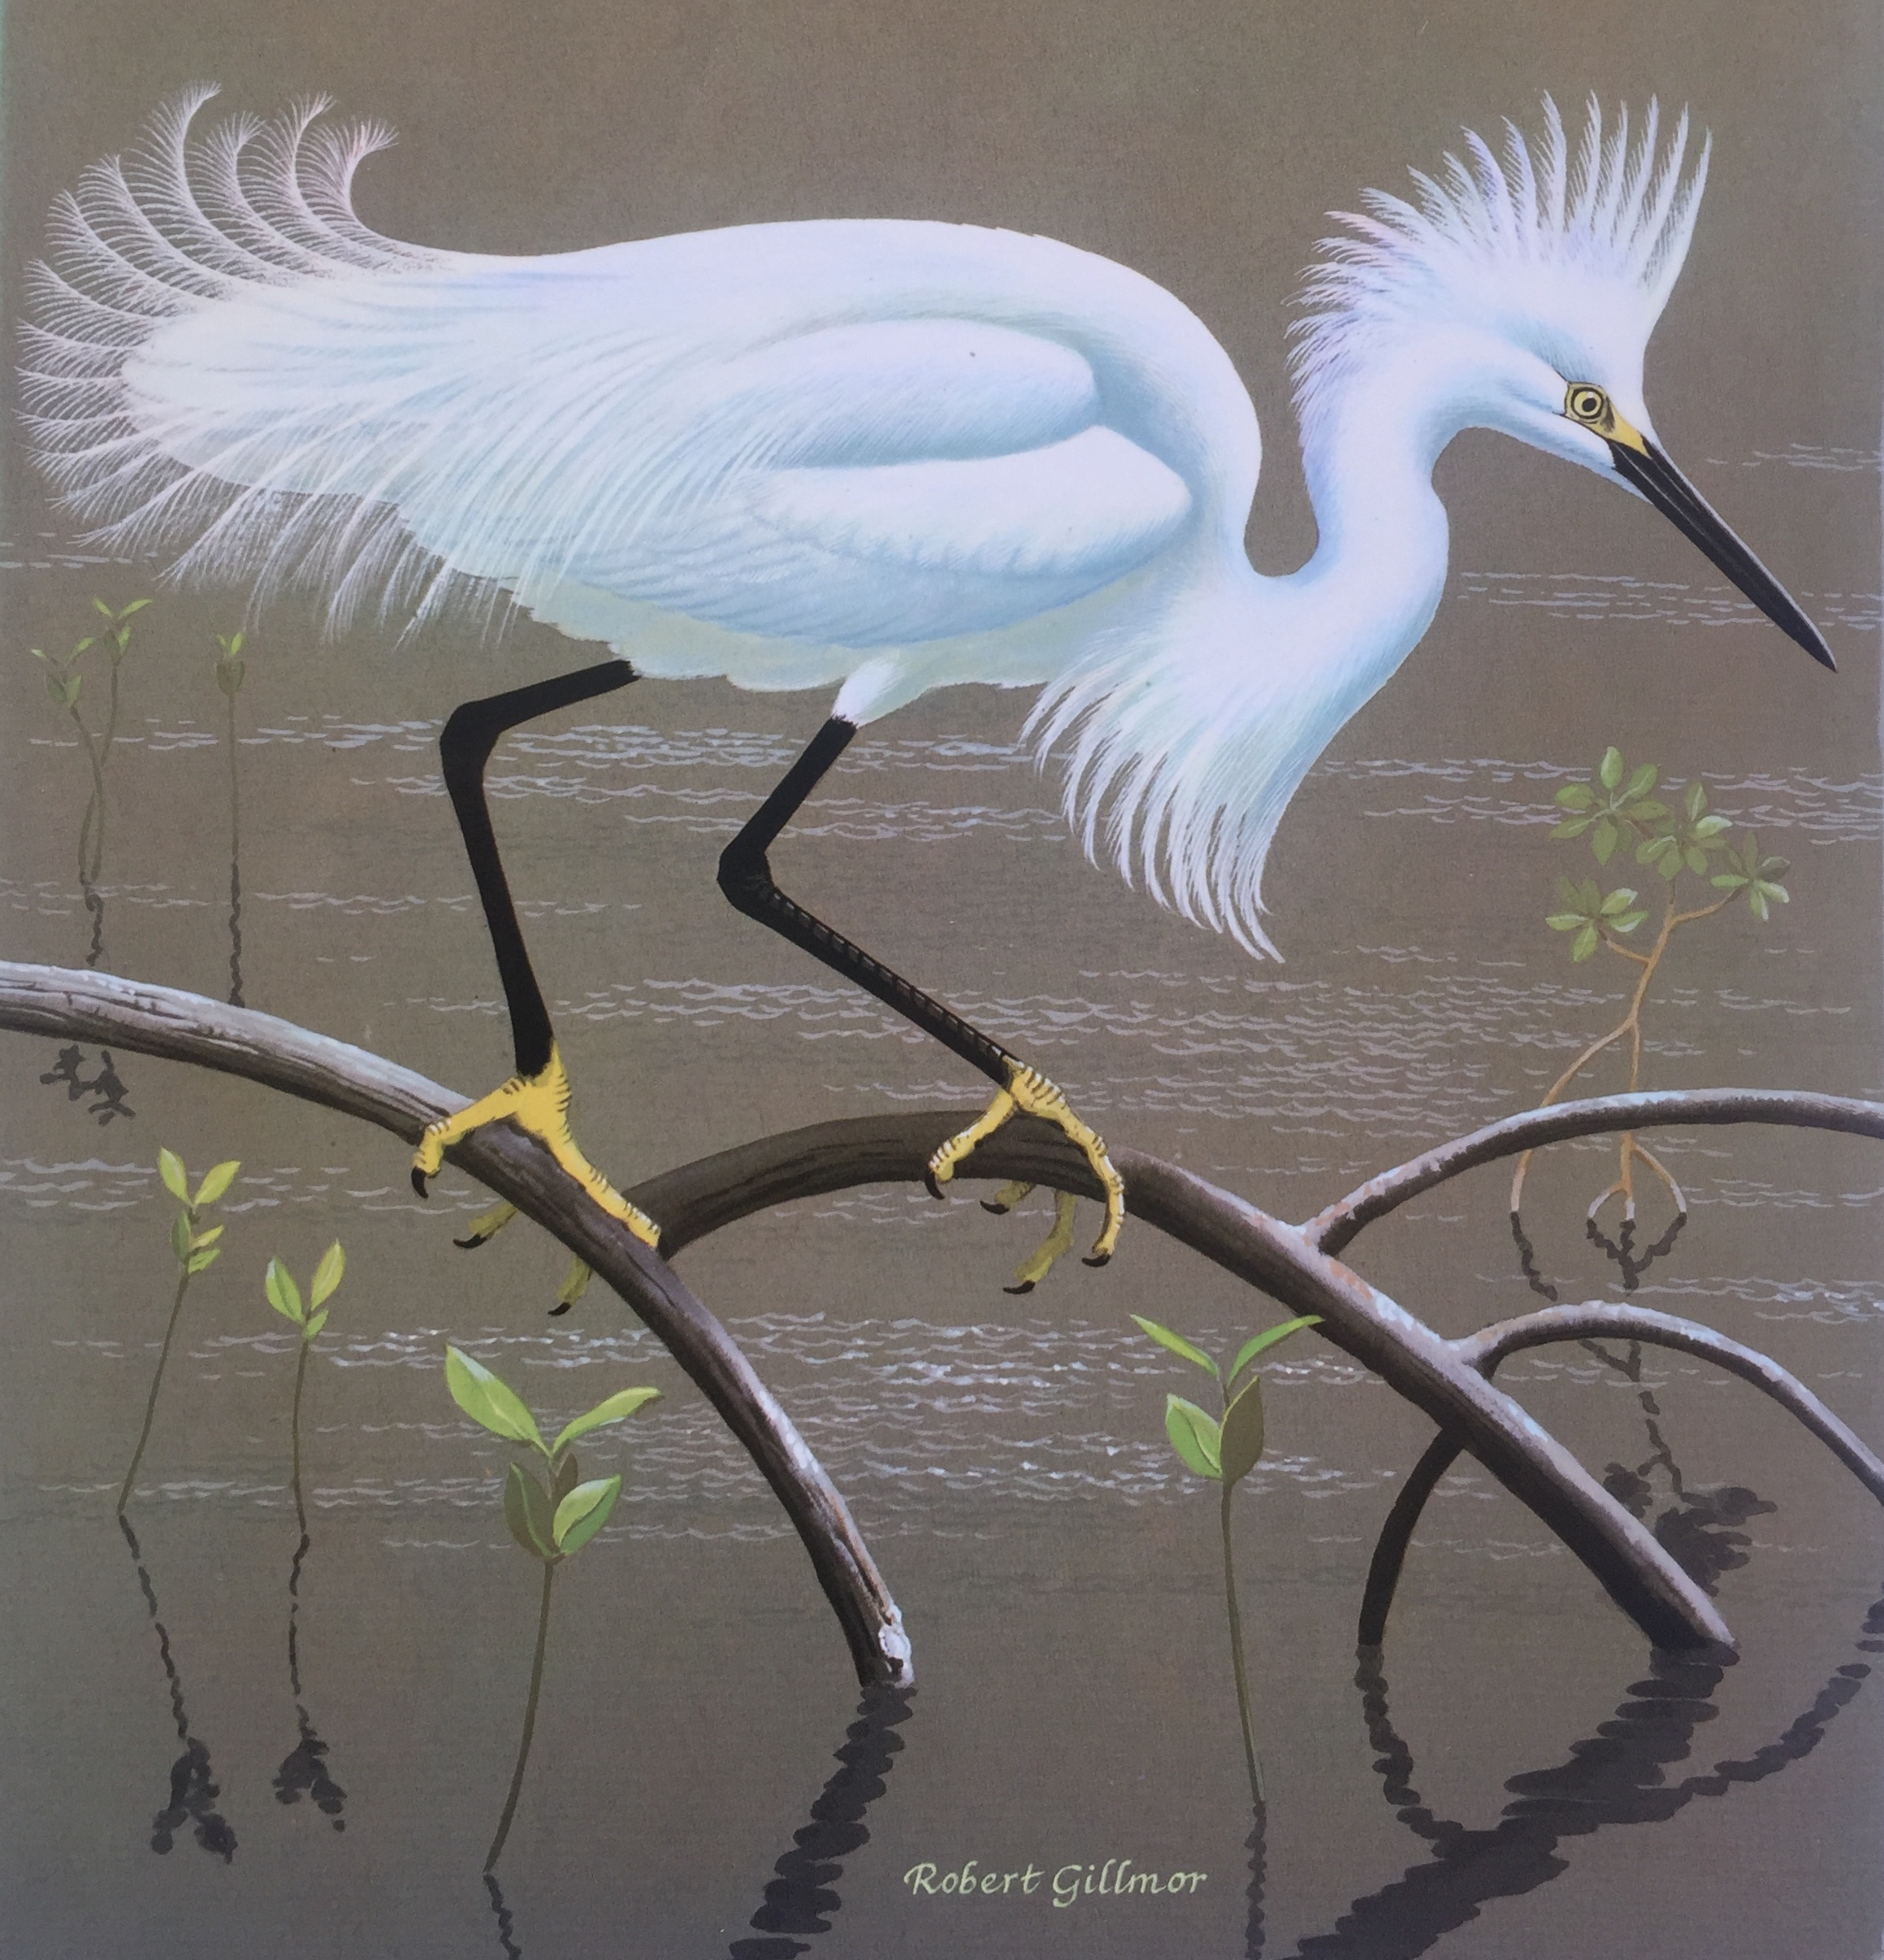 Snowy Egret from the cover of The Herons of the World by Robert Gillmor